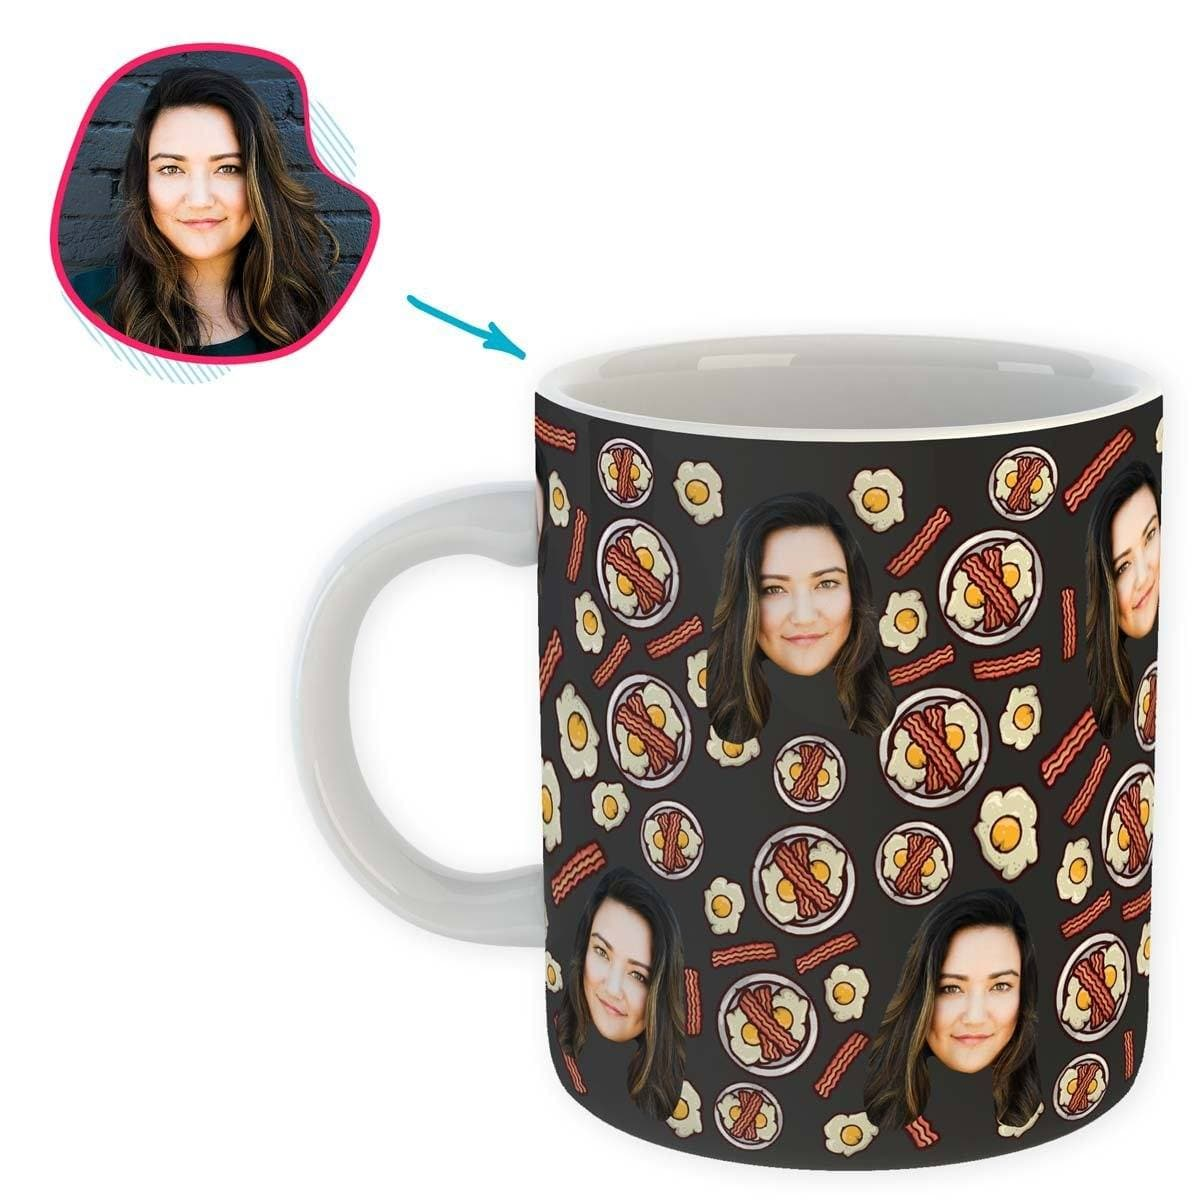 dark Bacon and Eggs mug personalized with photo of face printed on it